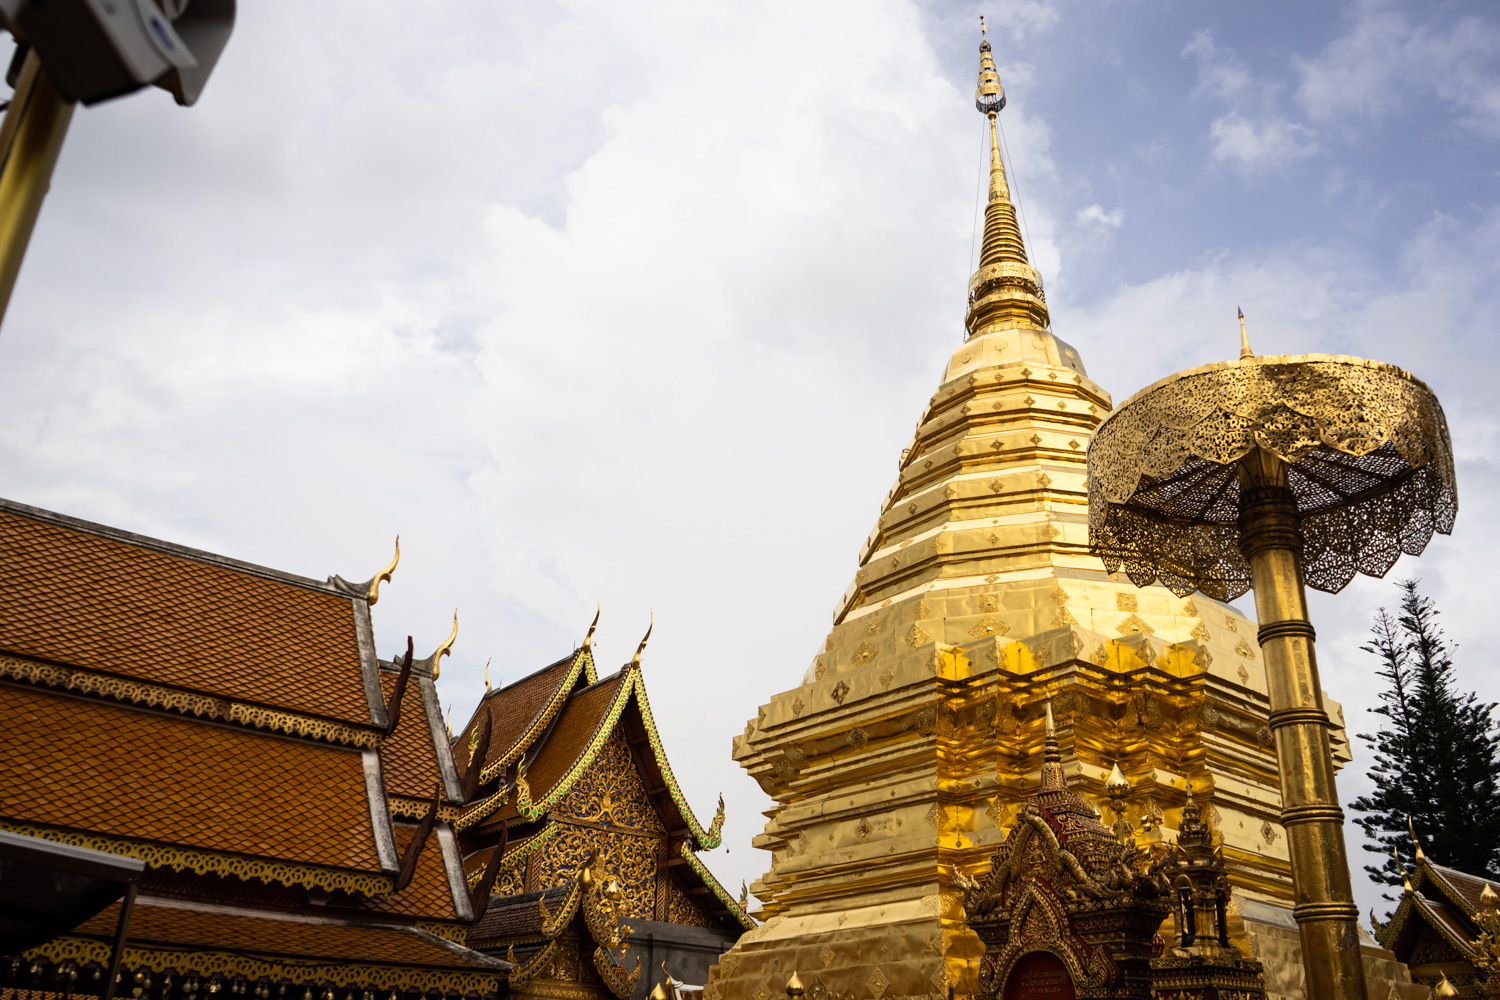 doi-suthep-3-day-itinerary-chiang-mai